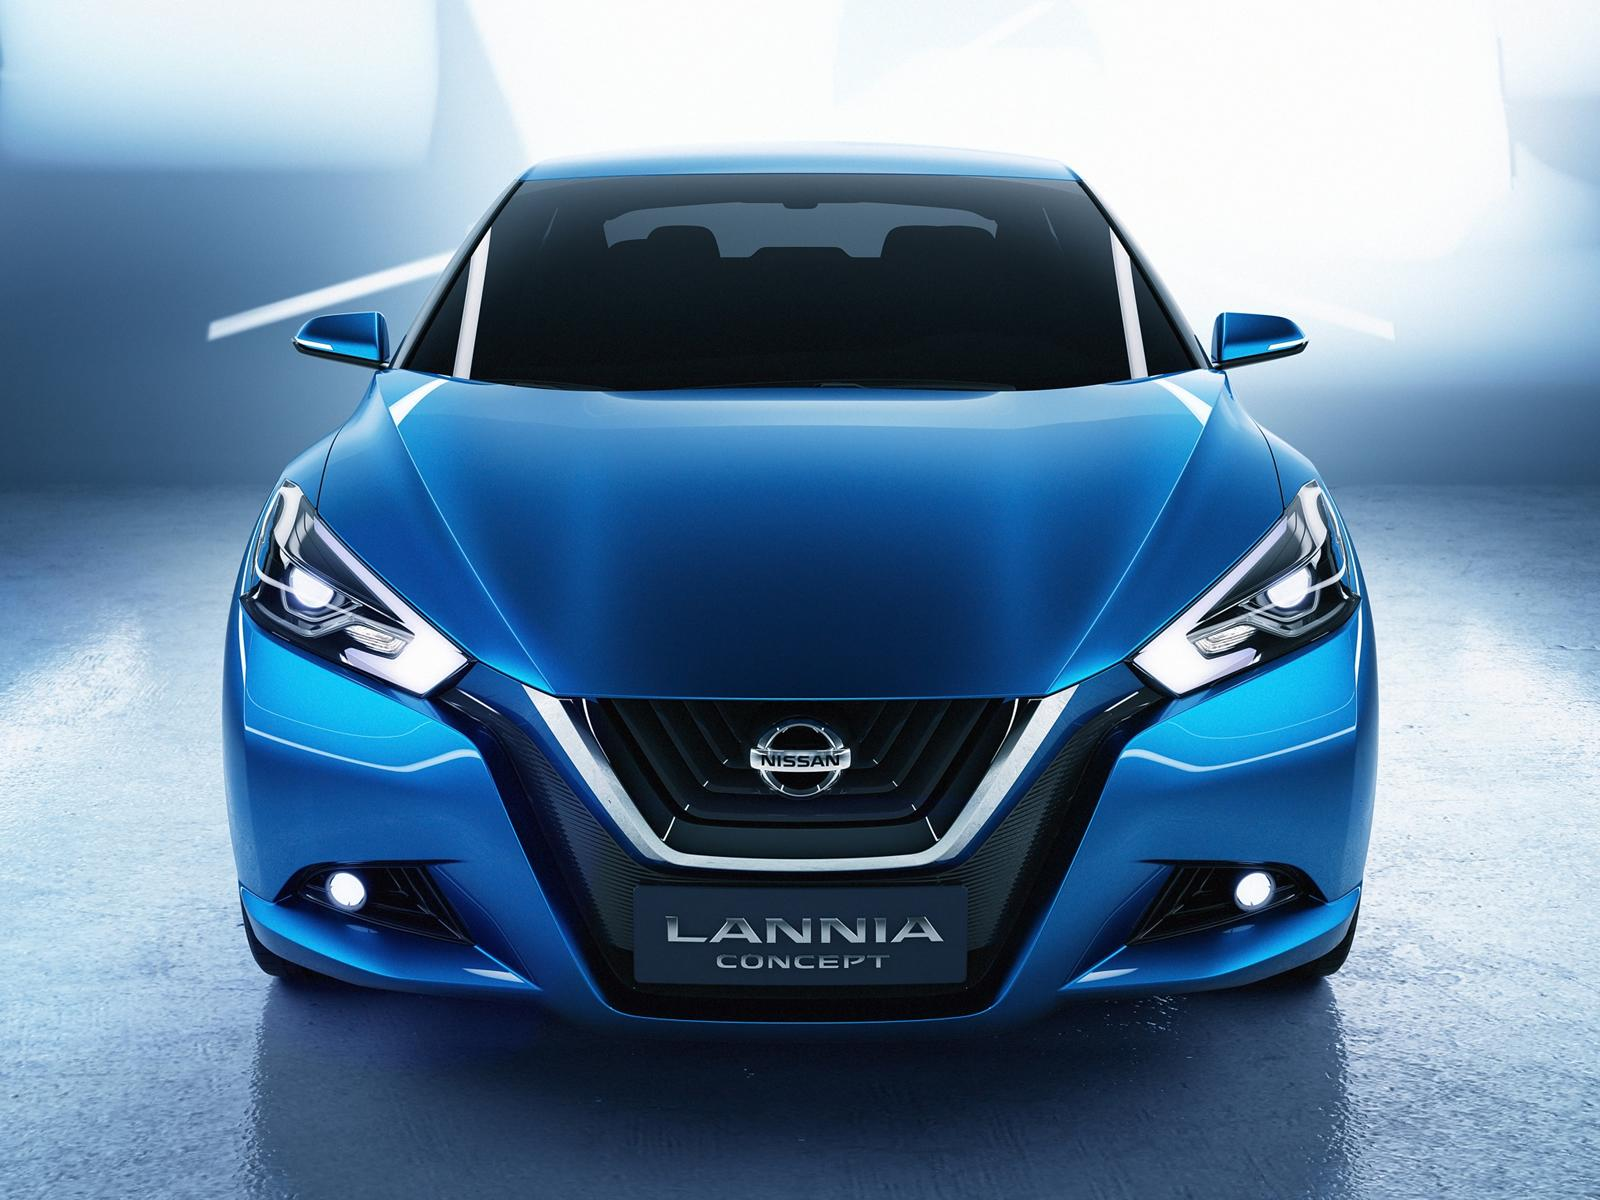 Nissan Cars - News: Lannia Concept for China unveiled